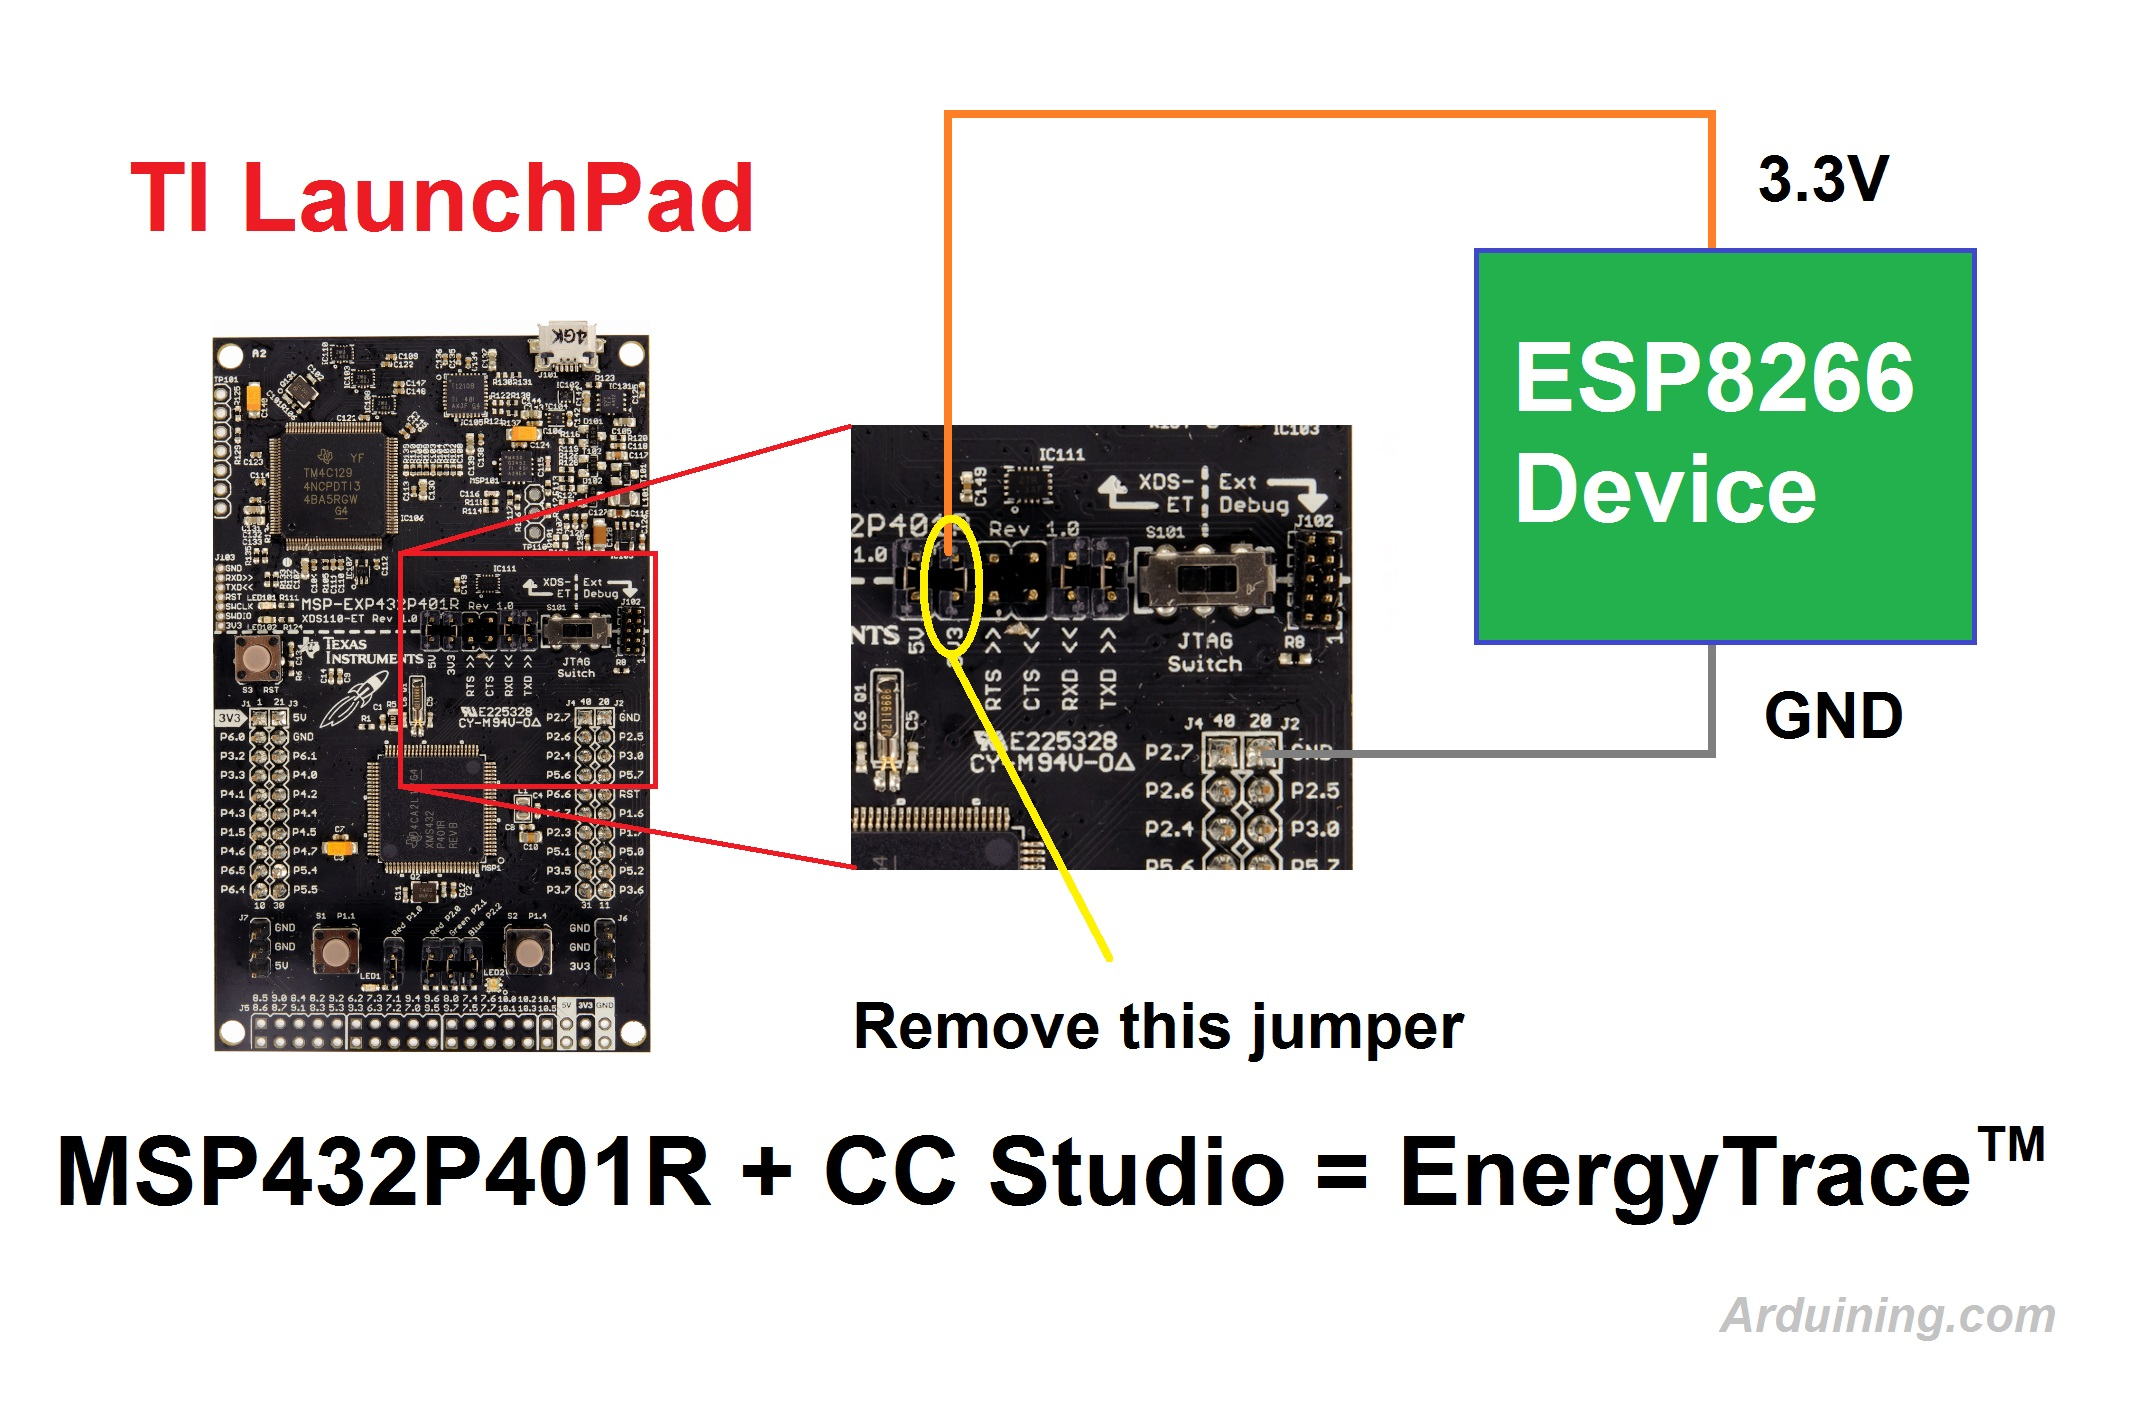 Battery Life of an ESP8266 design – Arduining